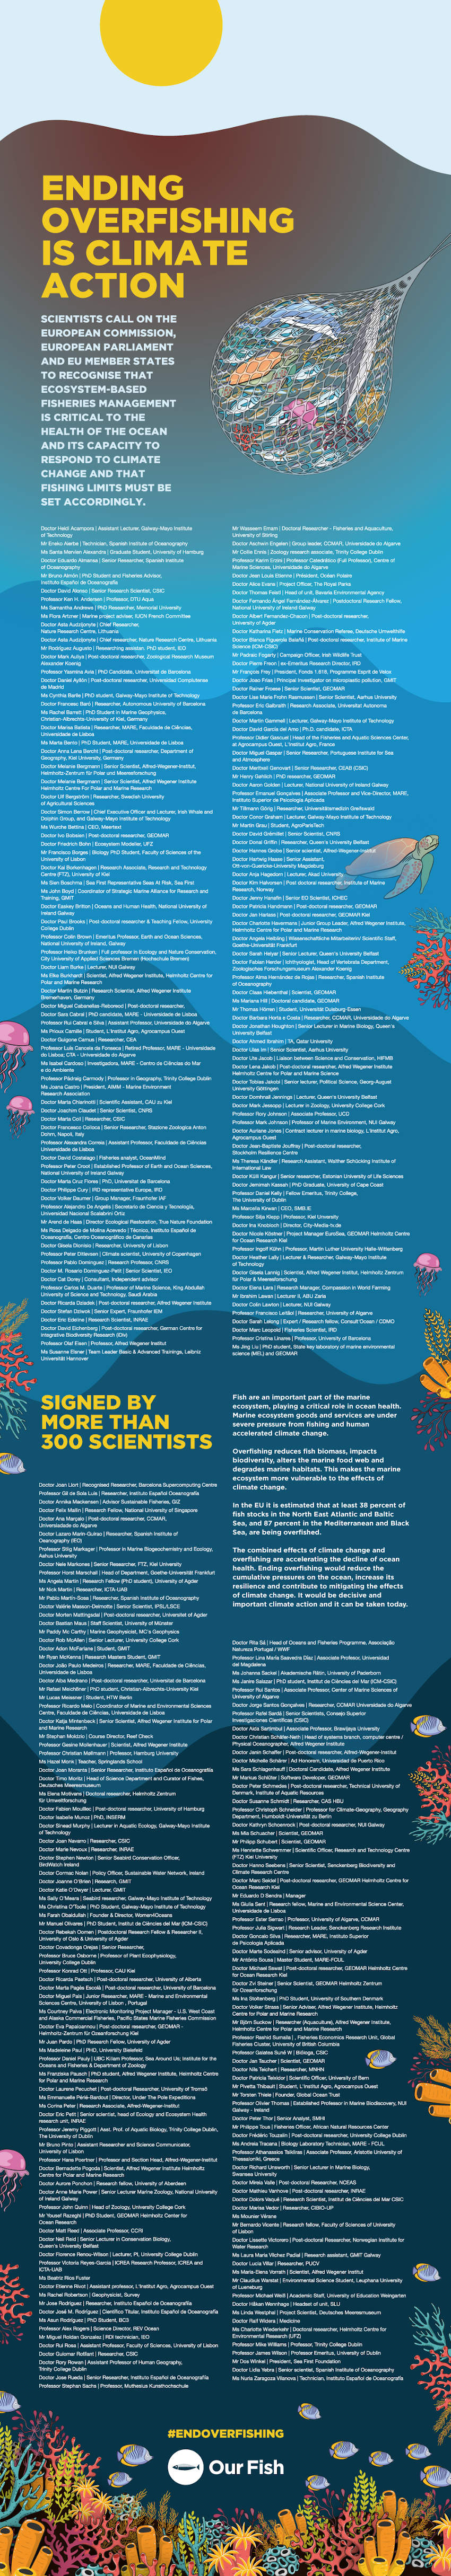 Our Fish statement and signatories